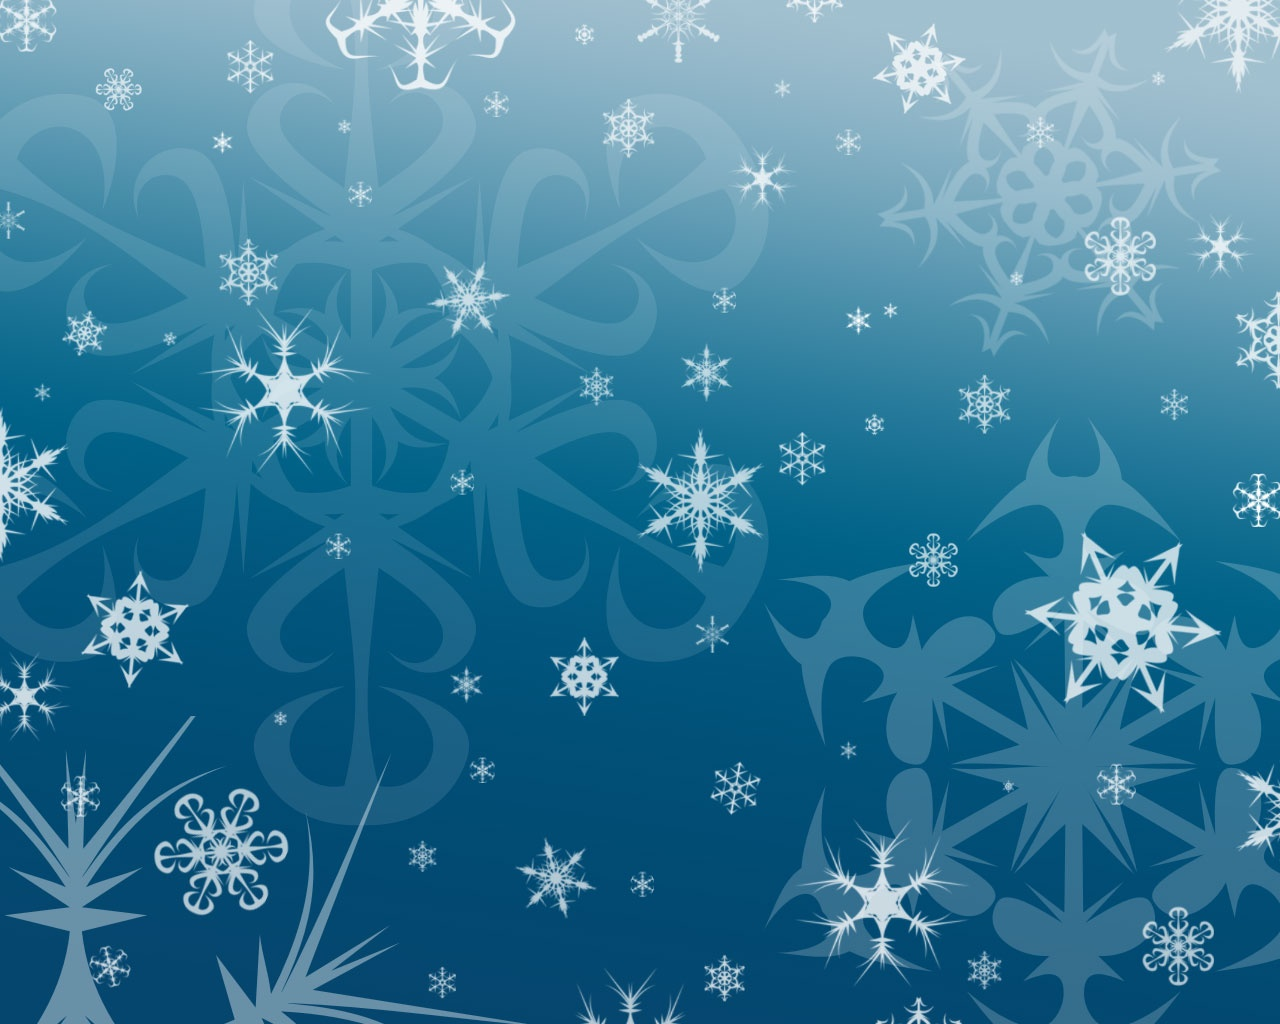 Abstract Free Christmas Wallpaper Pc Wallpaper